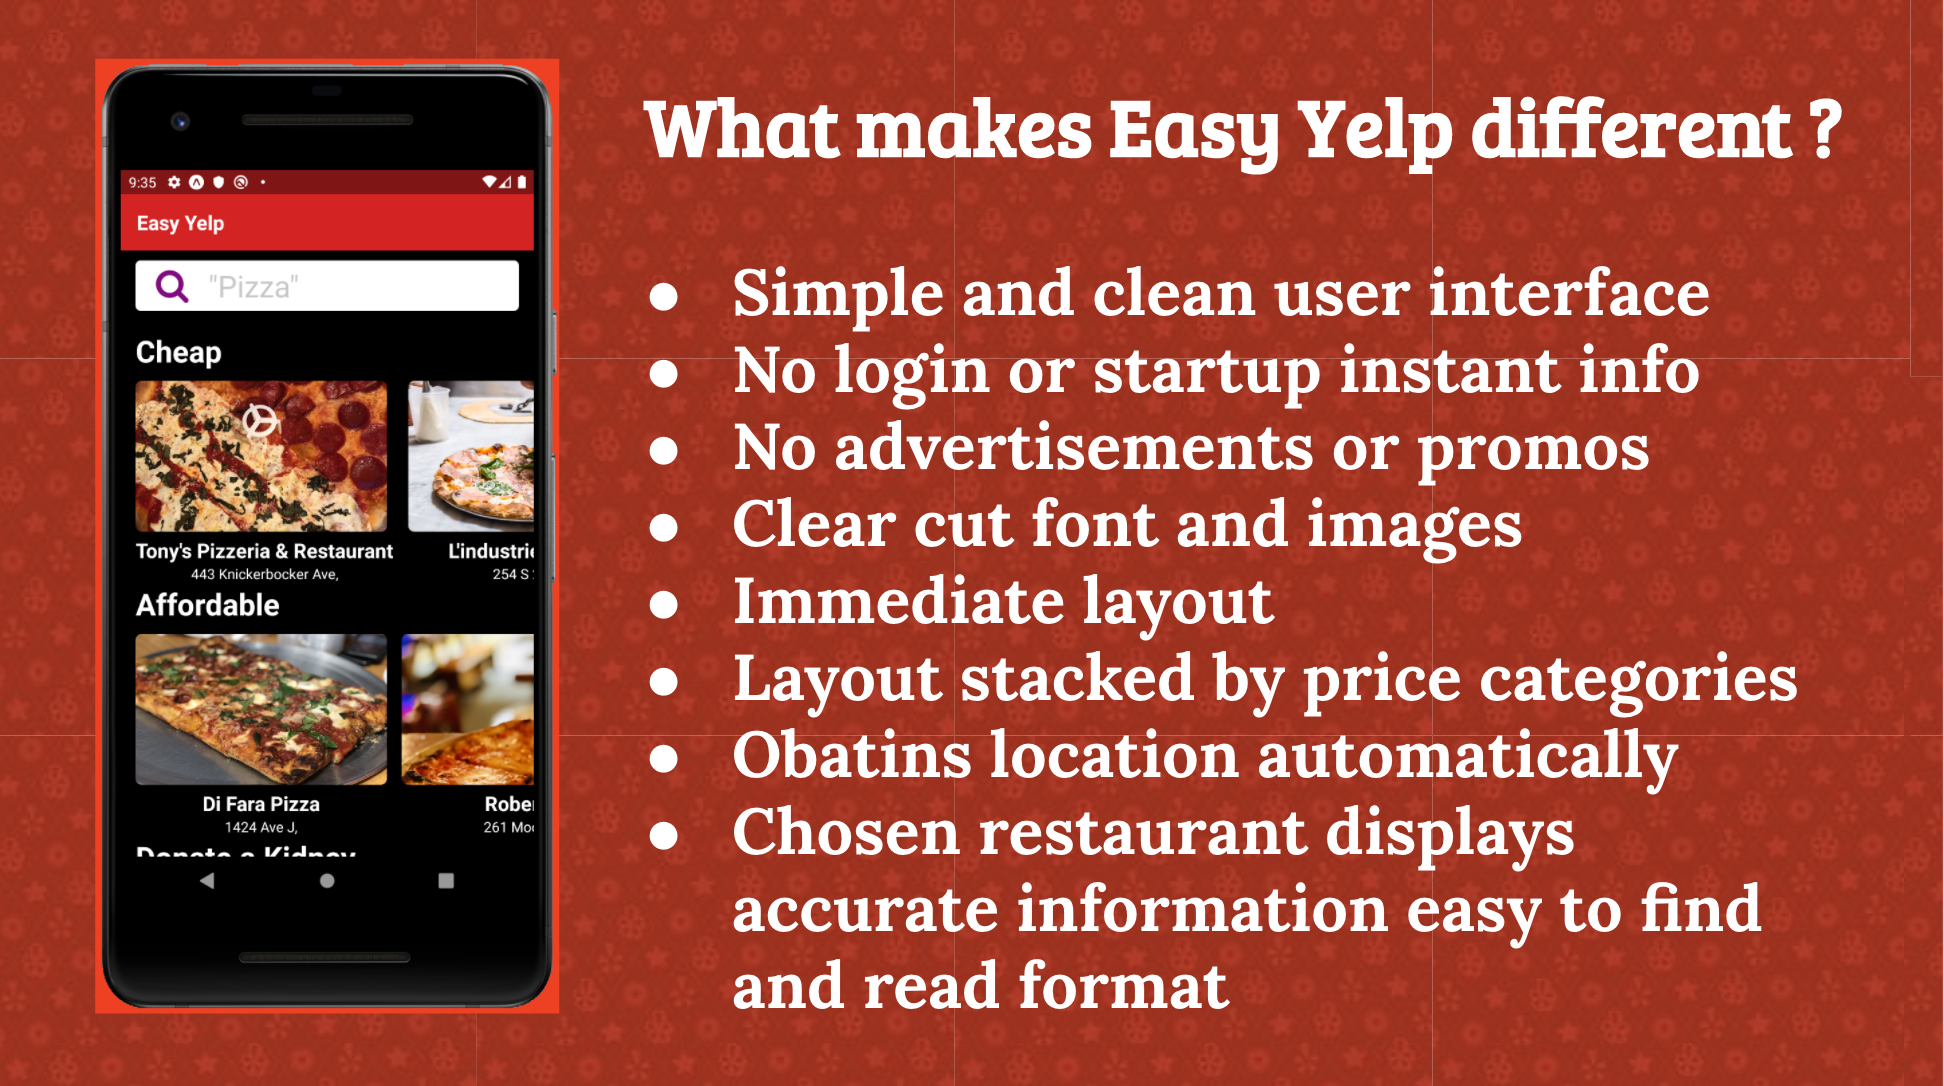 Easy Yelp Overview